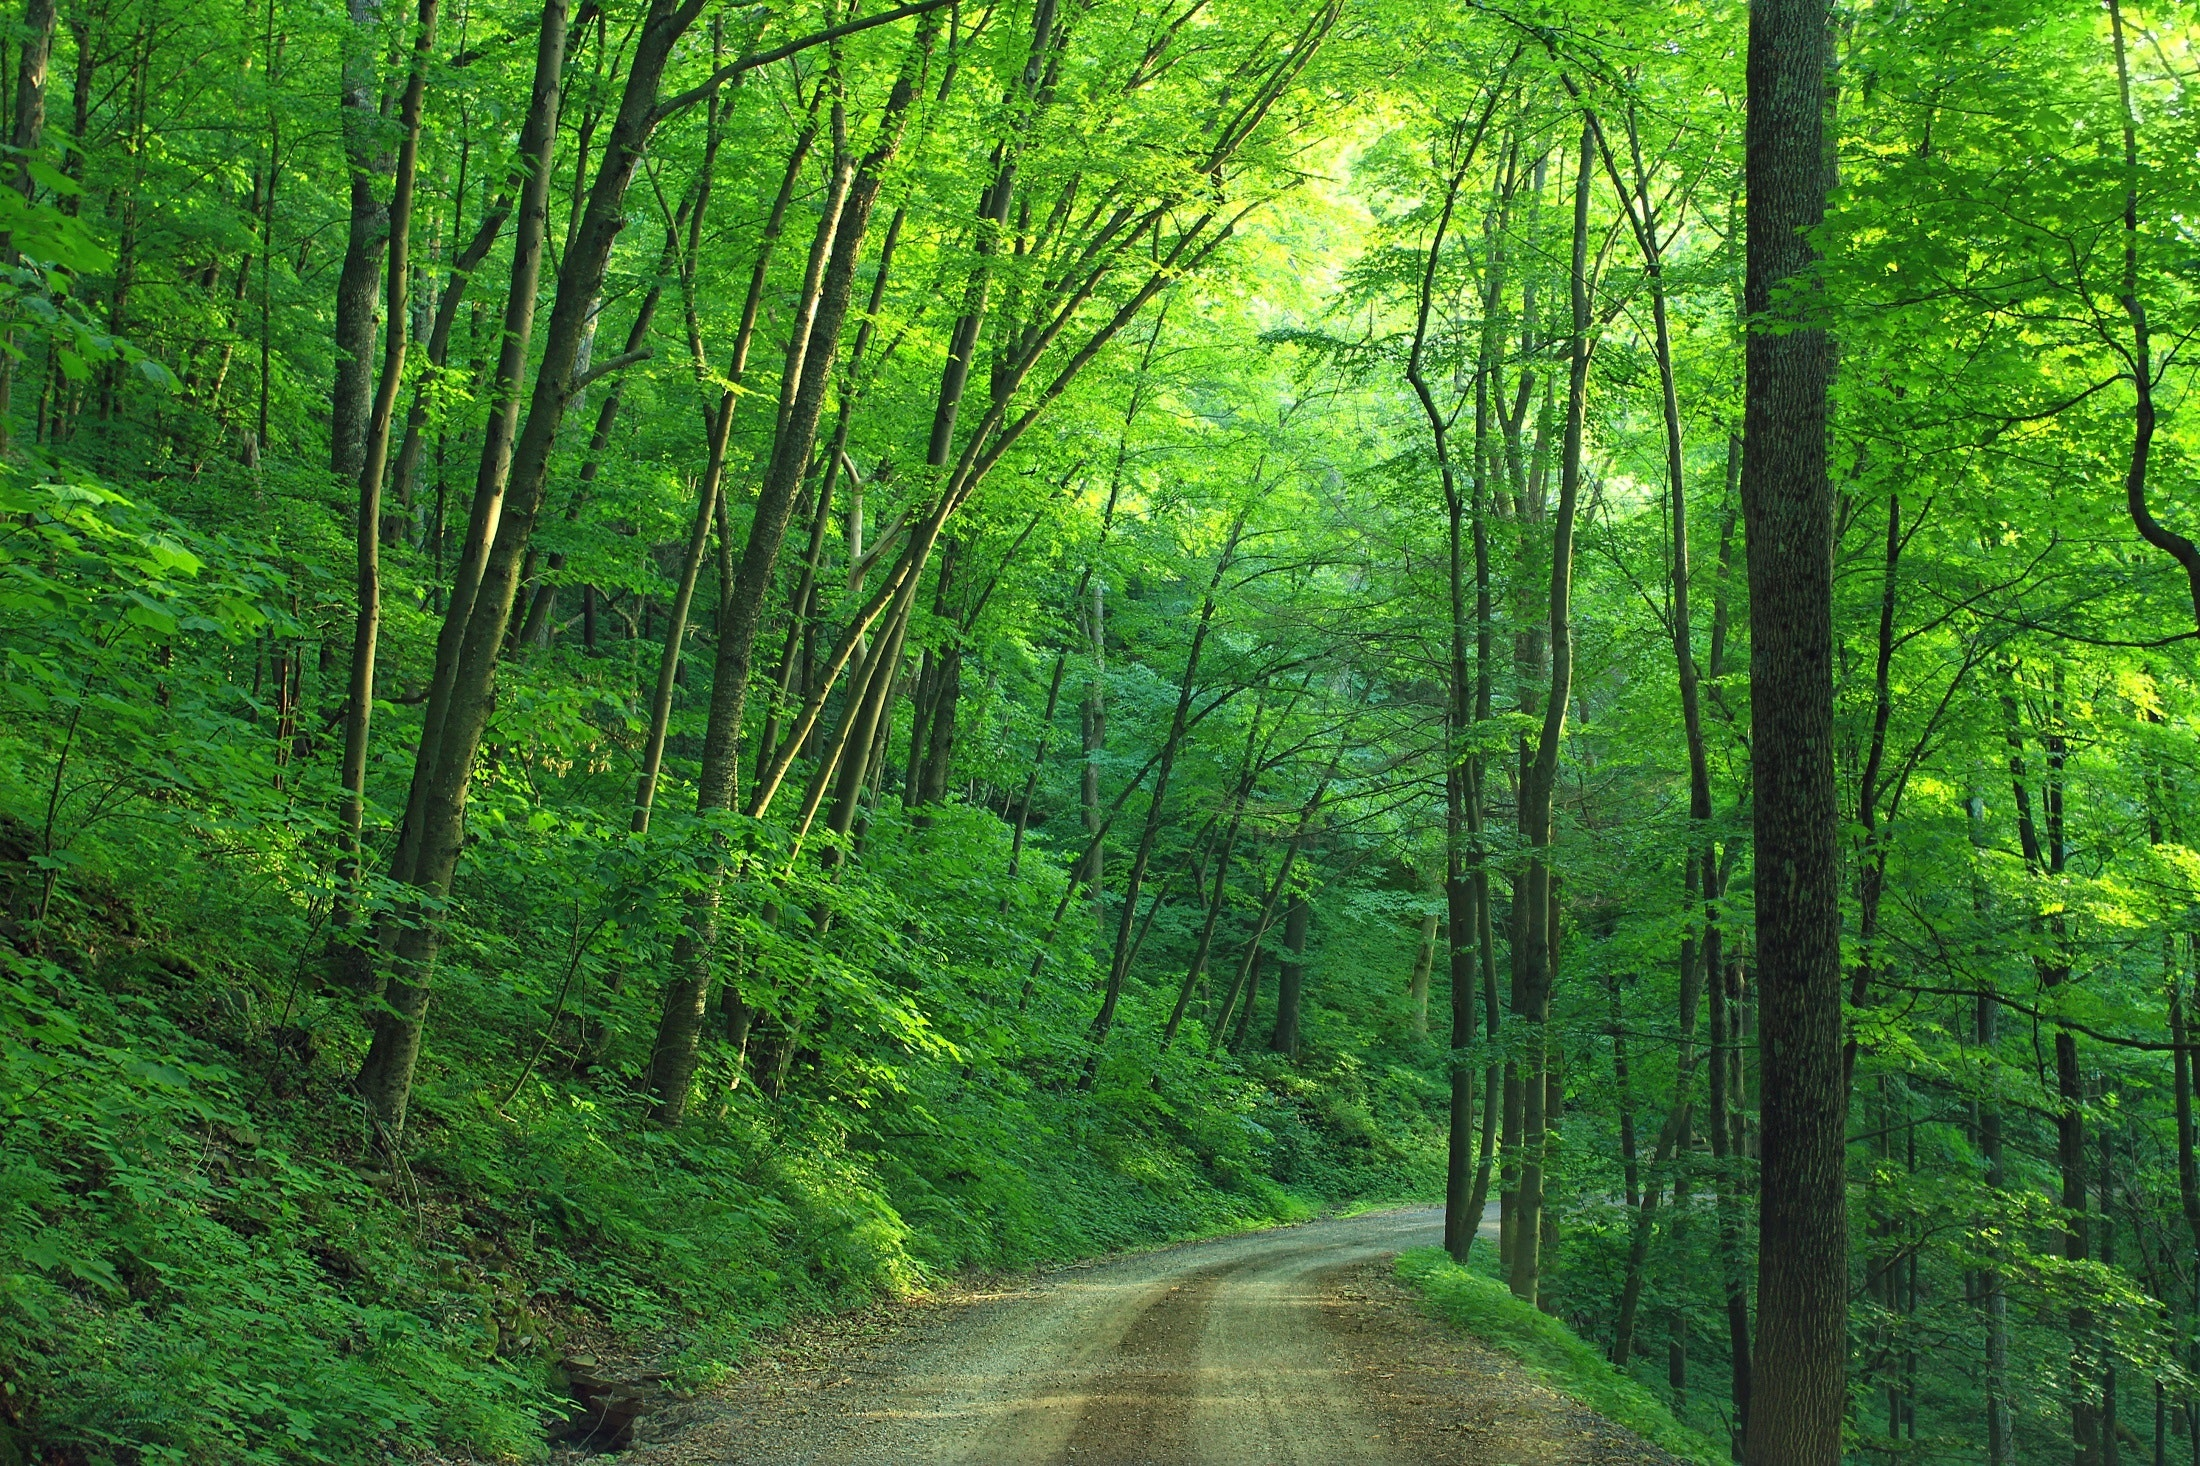 Green Tree Beside Roadway During Daytime · Free Stock Photo